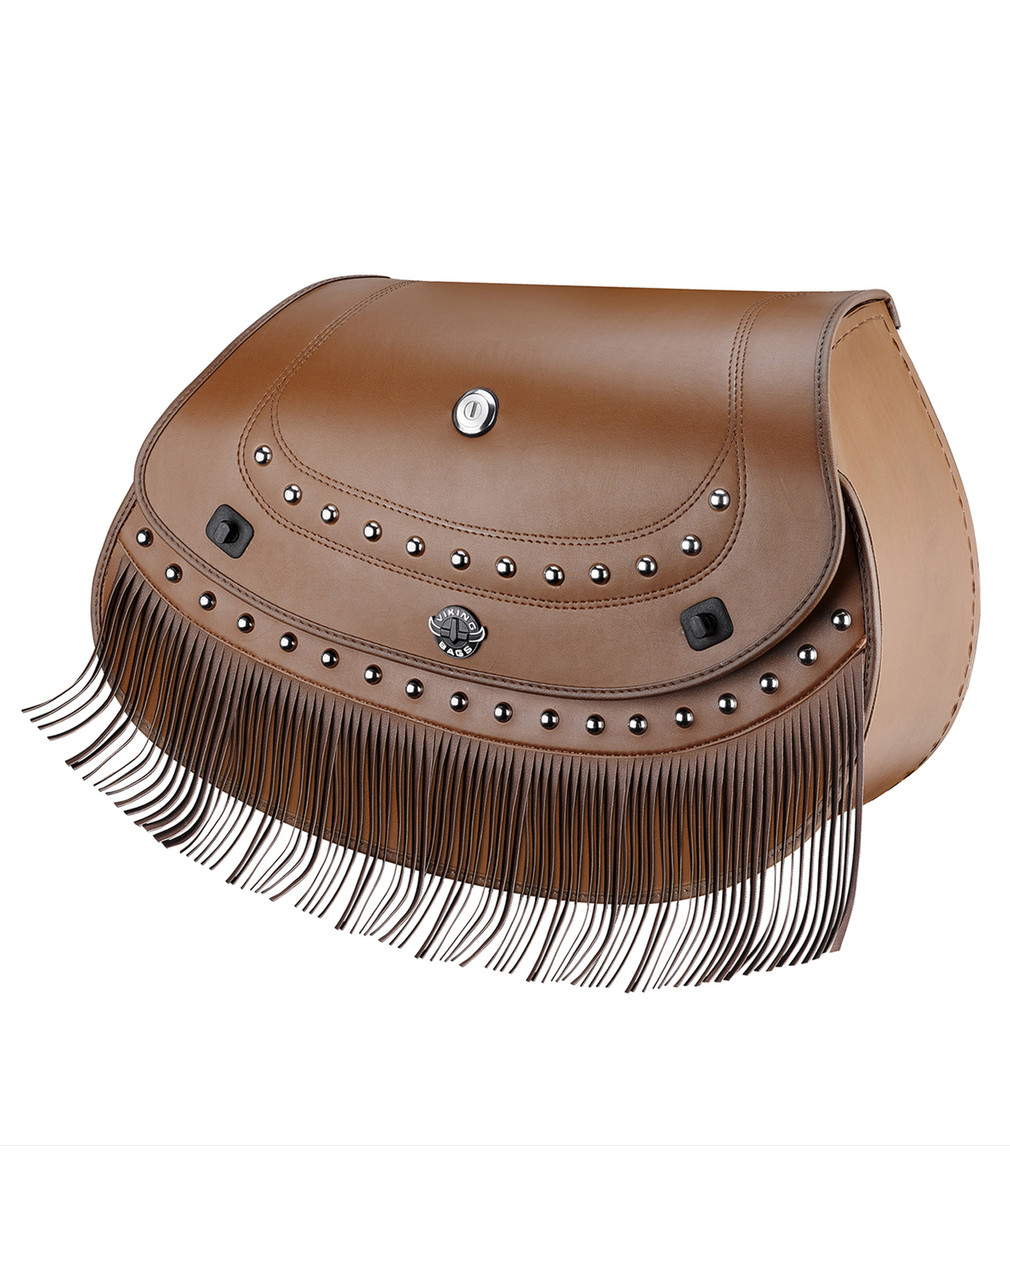 Indian Chief Vintage Viking Indian Specific Brown Leather Motorcycle Saddlebags Main View